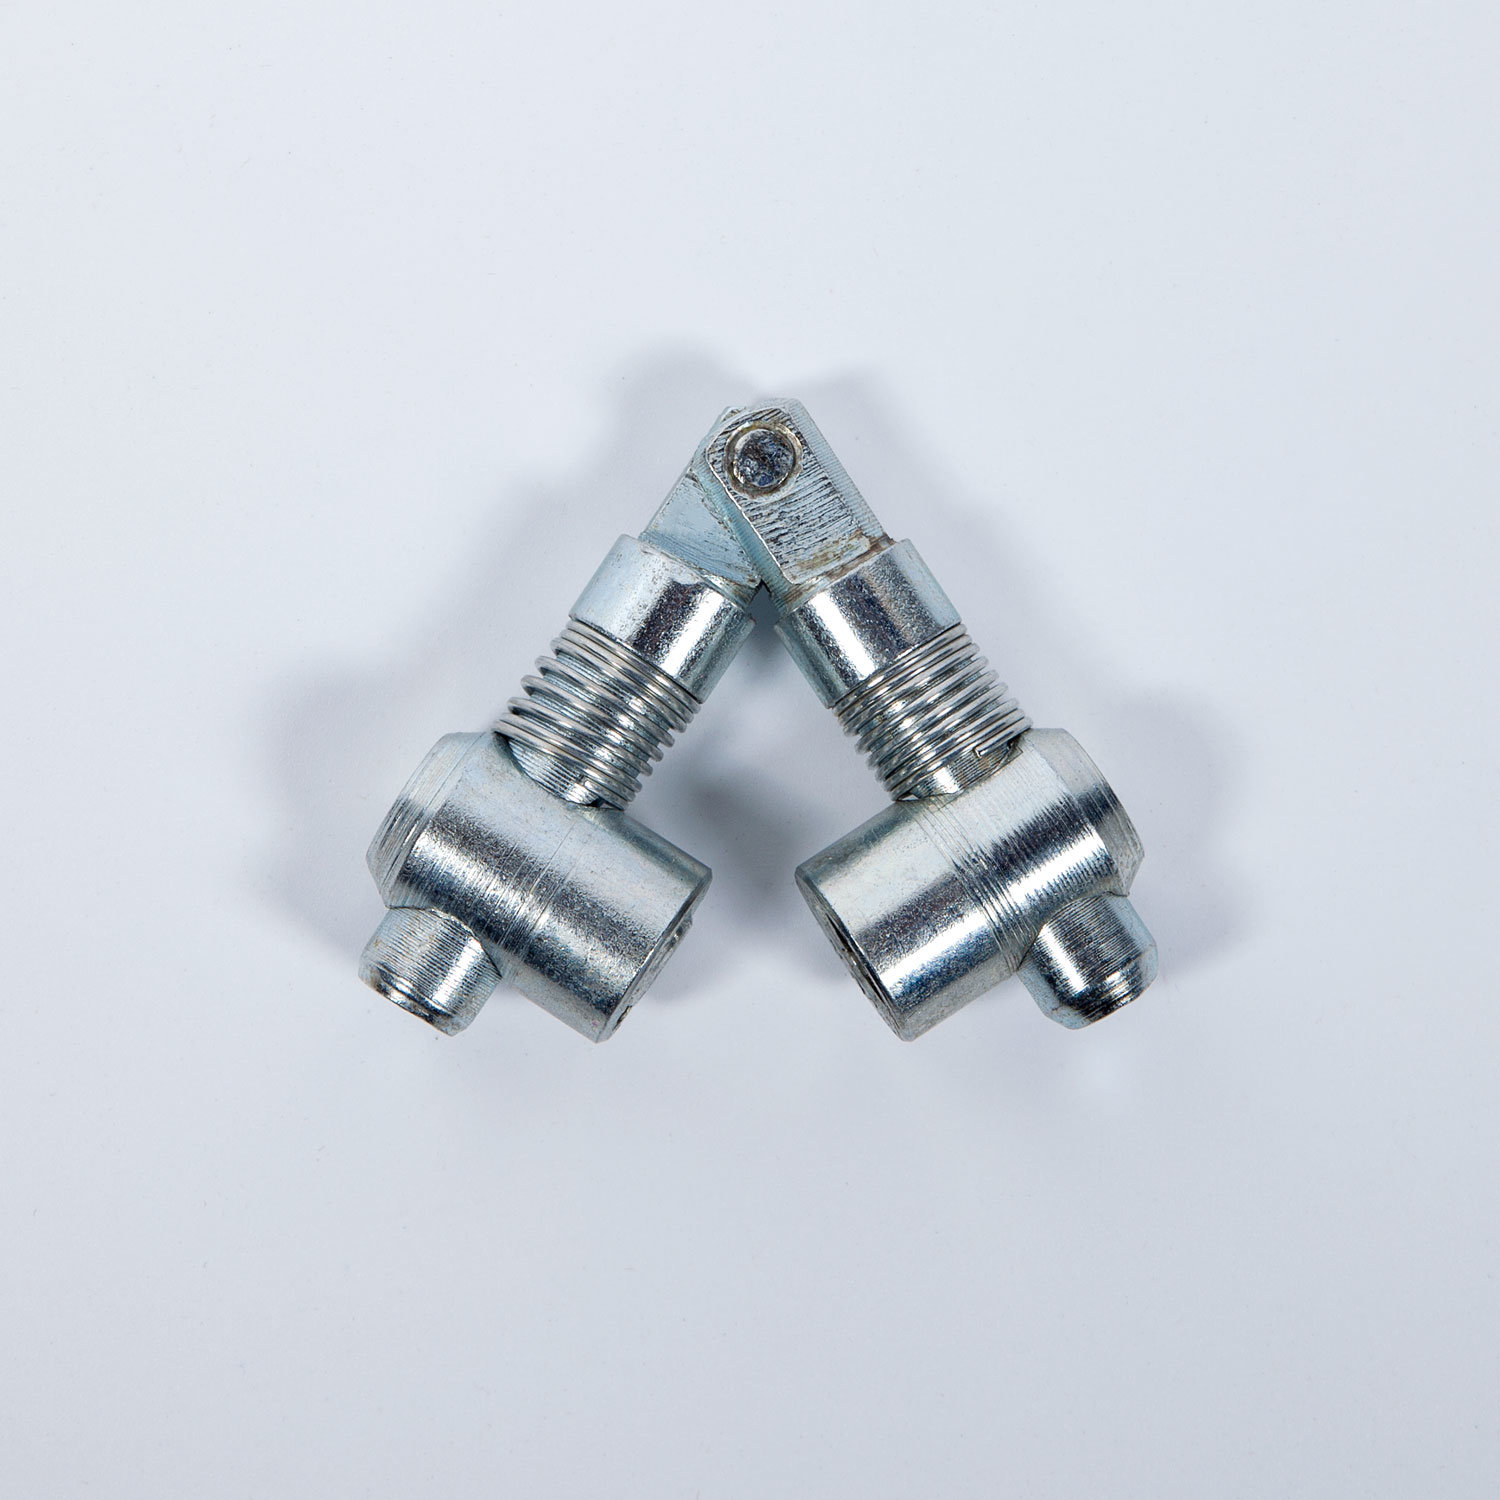 Achored Diagonal Connecting Pin for 50 Series